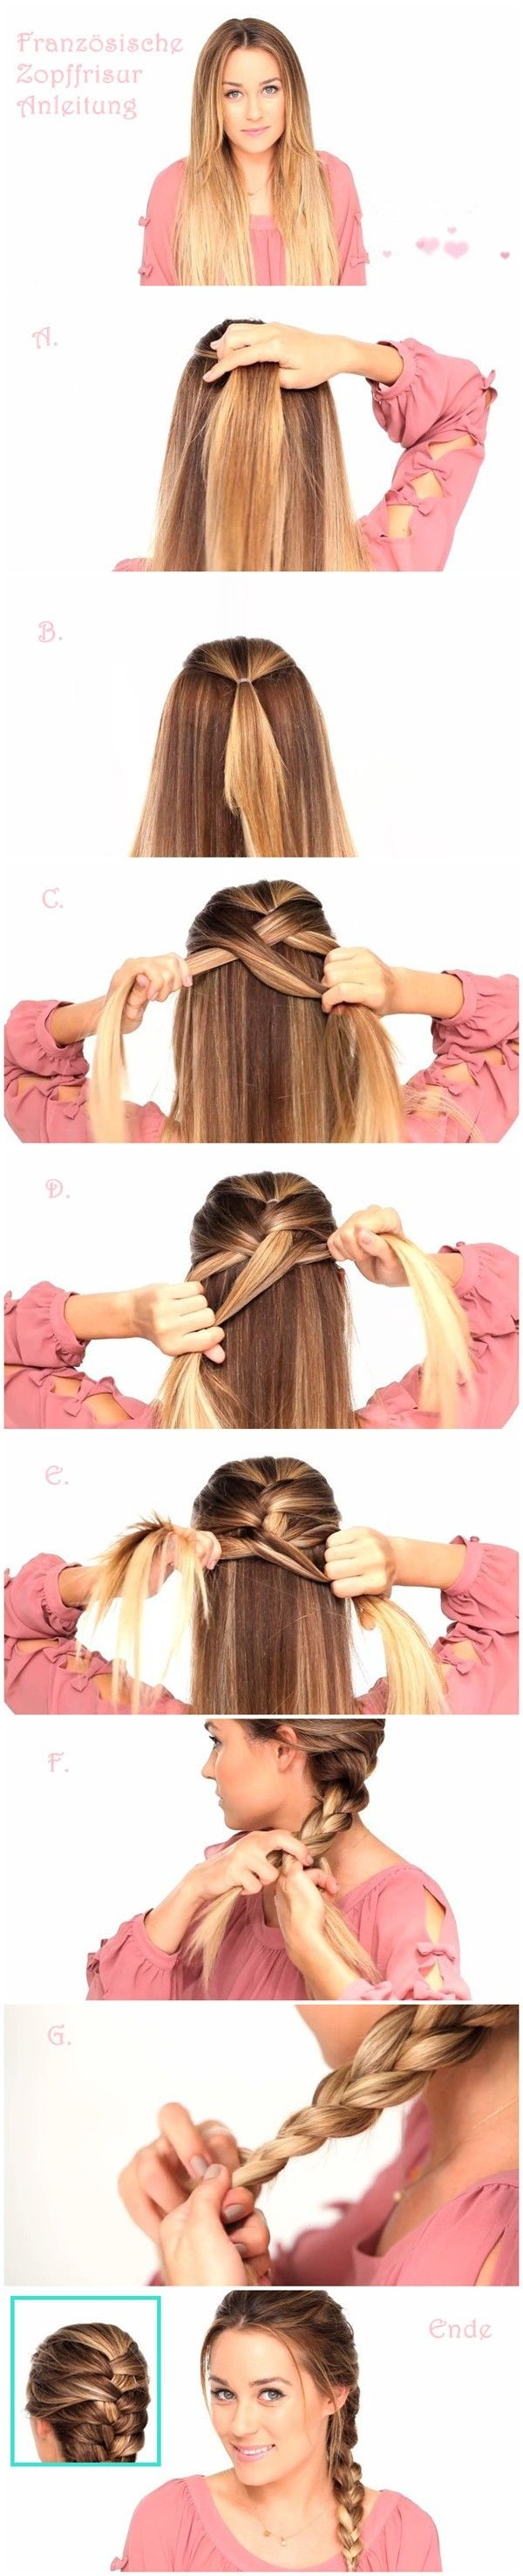 Outstanding 10 French Braids Hairstyles Tutorials Everyday Hair Styles Hairstyle Inspiration Daily Dogsangcom